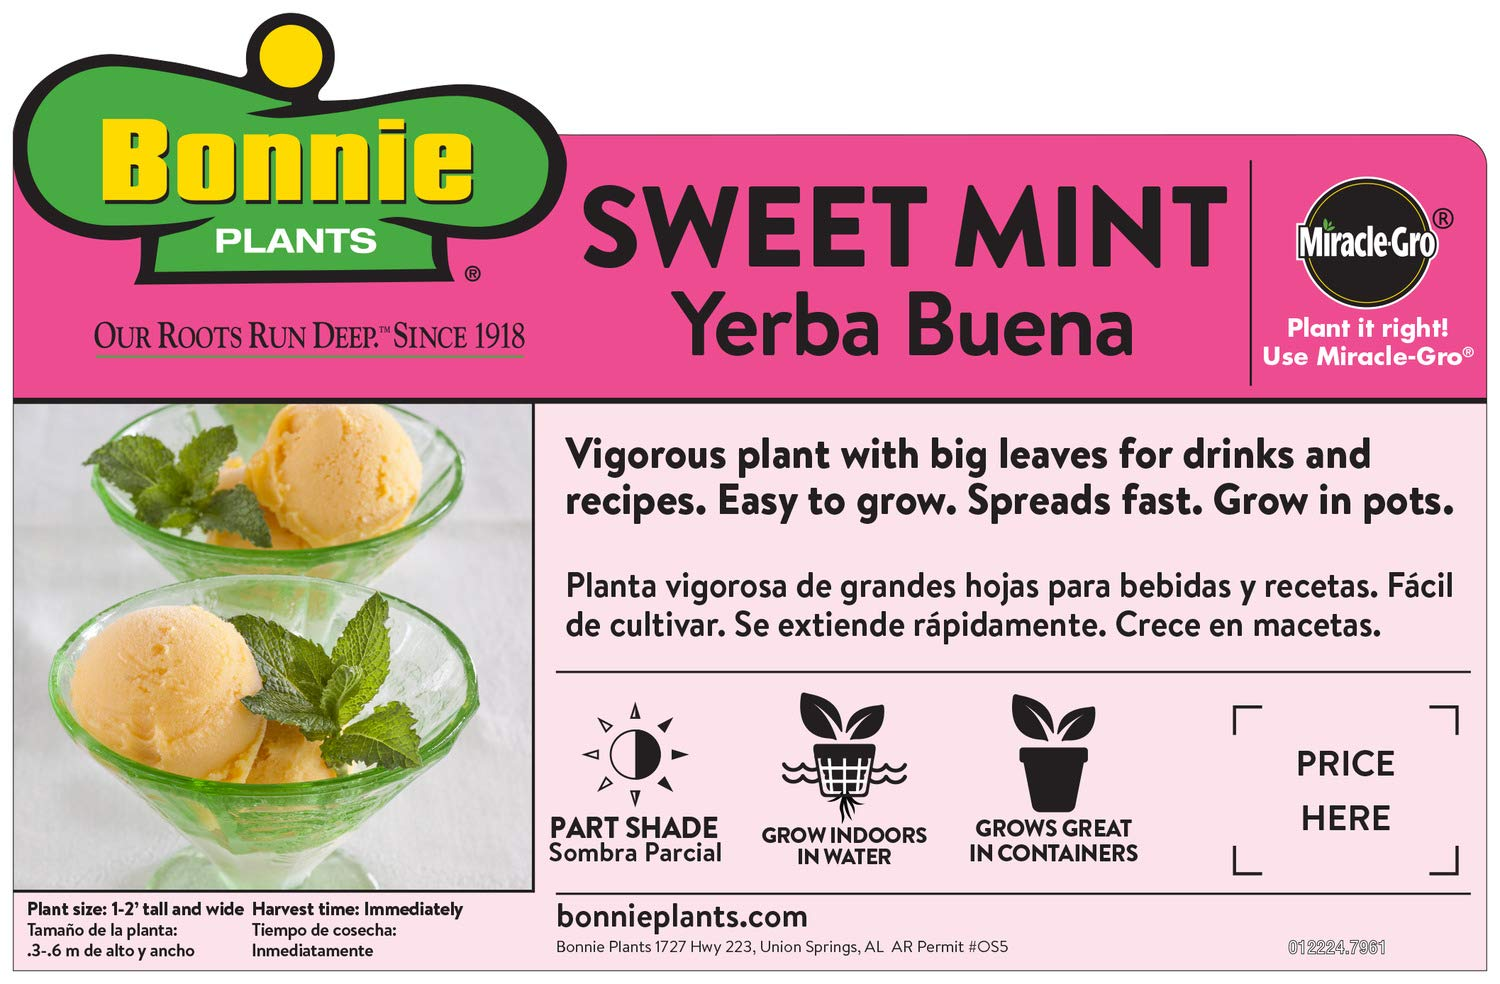 Bonnie Plants Sweet Mint Live Edible Aromatic Herb Plant - 4 Pack, Easy To Grow, Non-GMO, Perennial In Zones 5 to 11, Used In Teas & Other Beverages, Salads, Garnish, Jelly & Desserts by Bonnie Plants (Image #3)